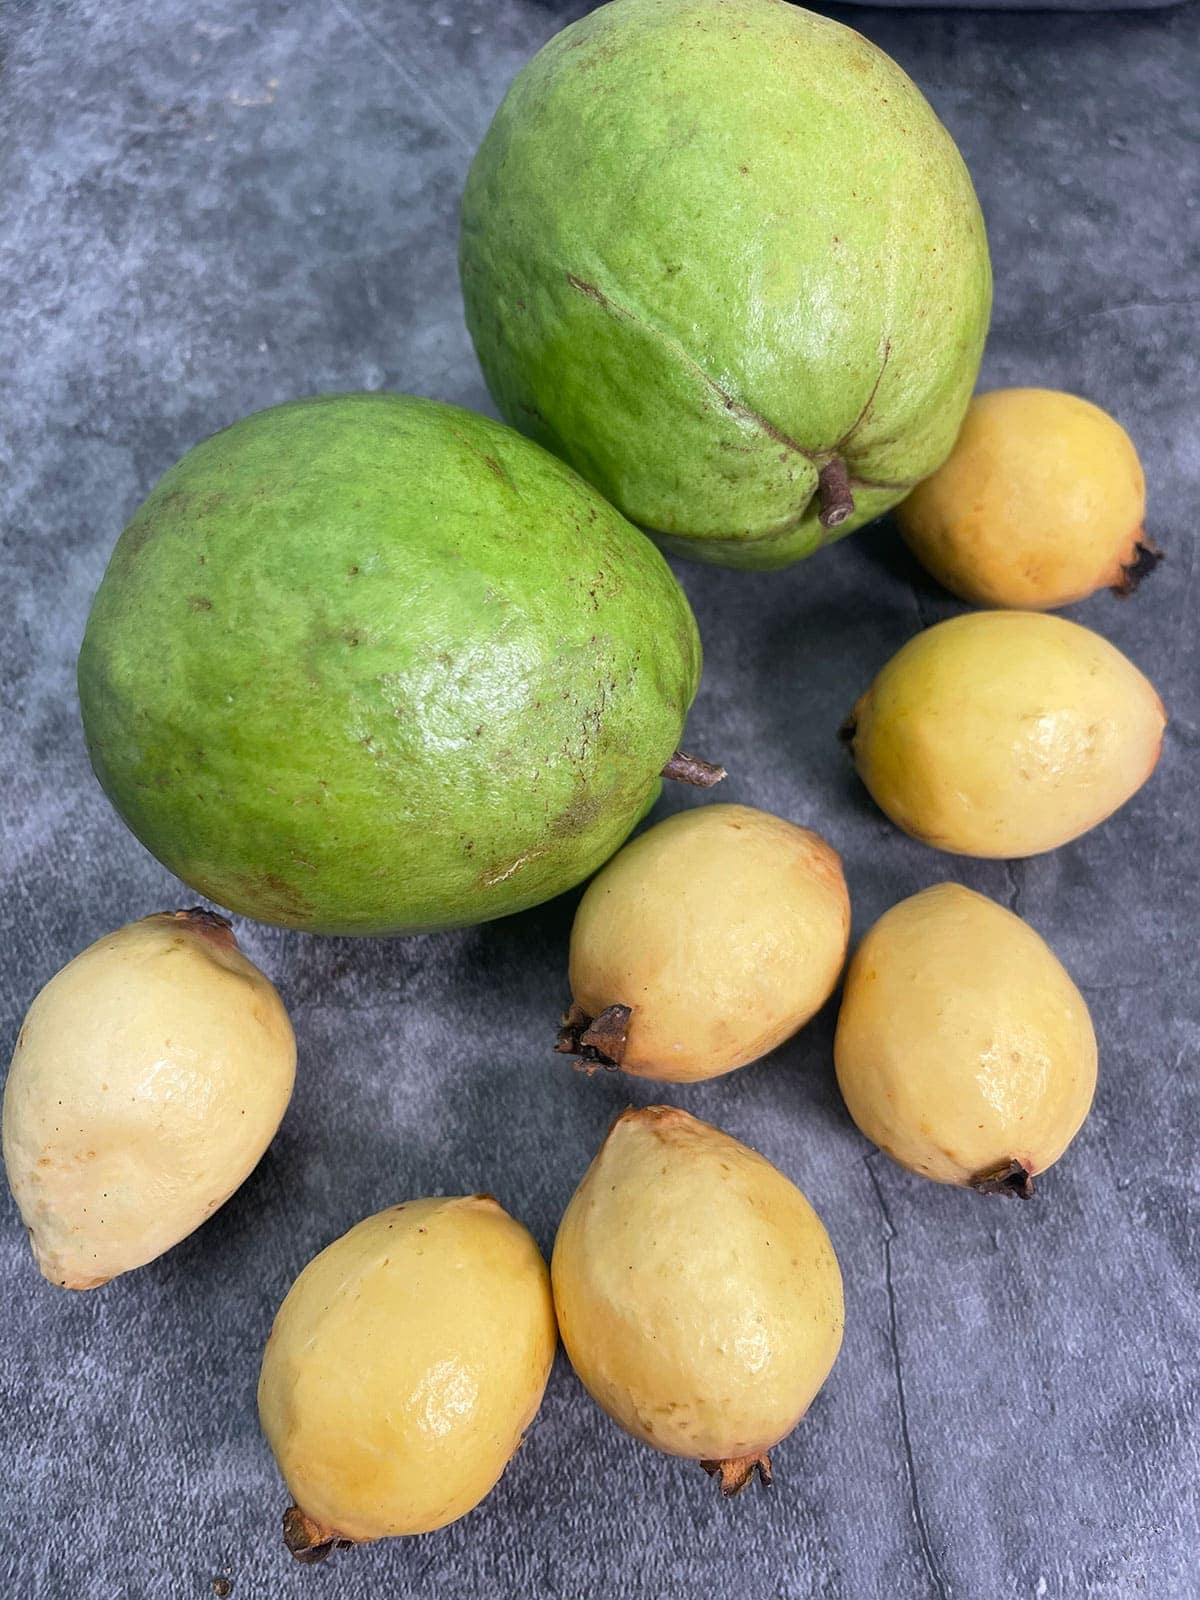 yellow guavas and white guavas on grey background